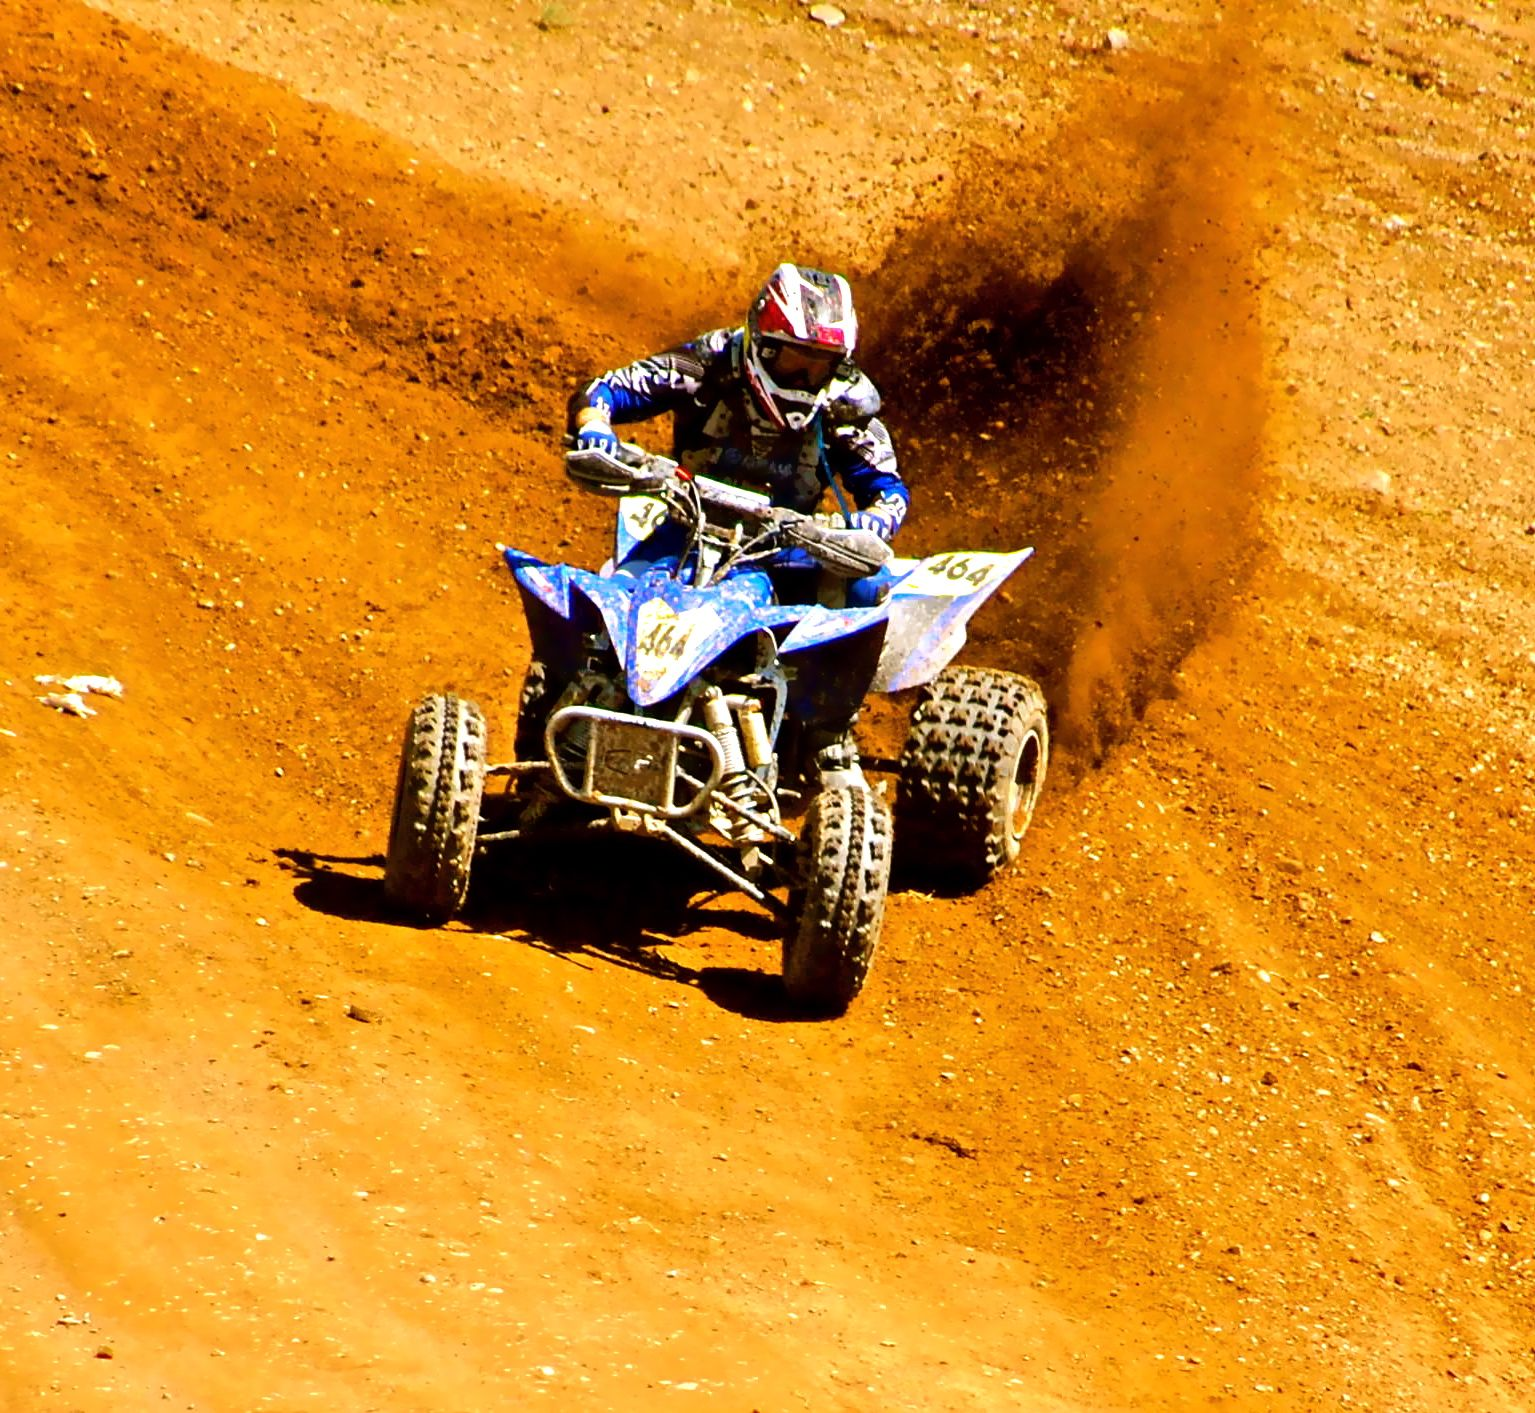 atv parts and accessories - www.atvupgrade - check out all the